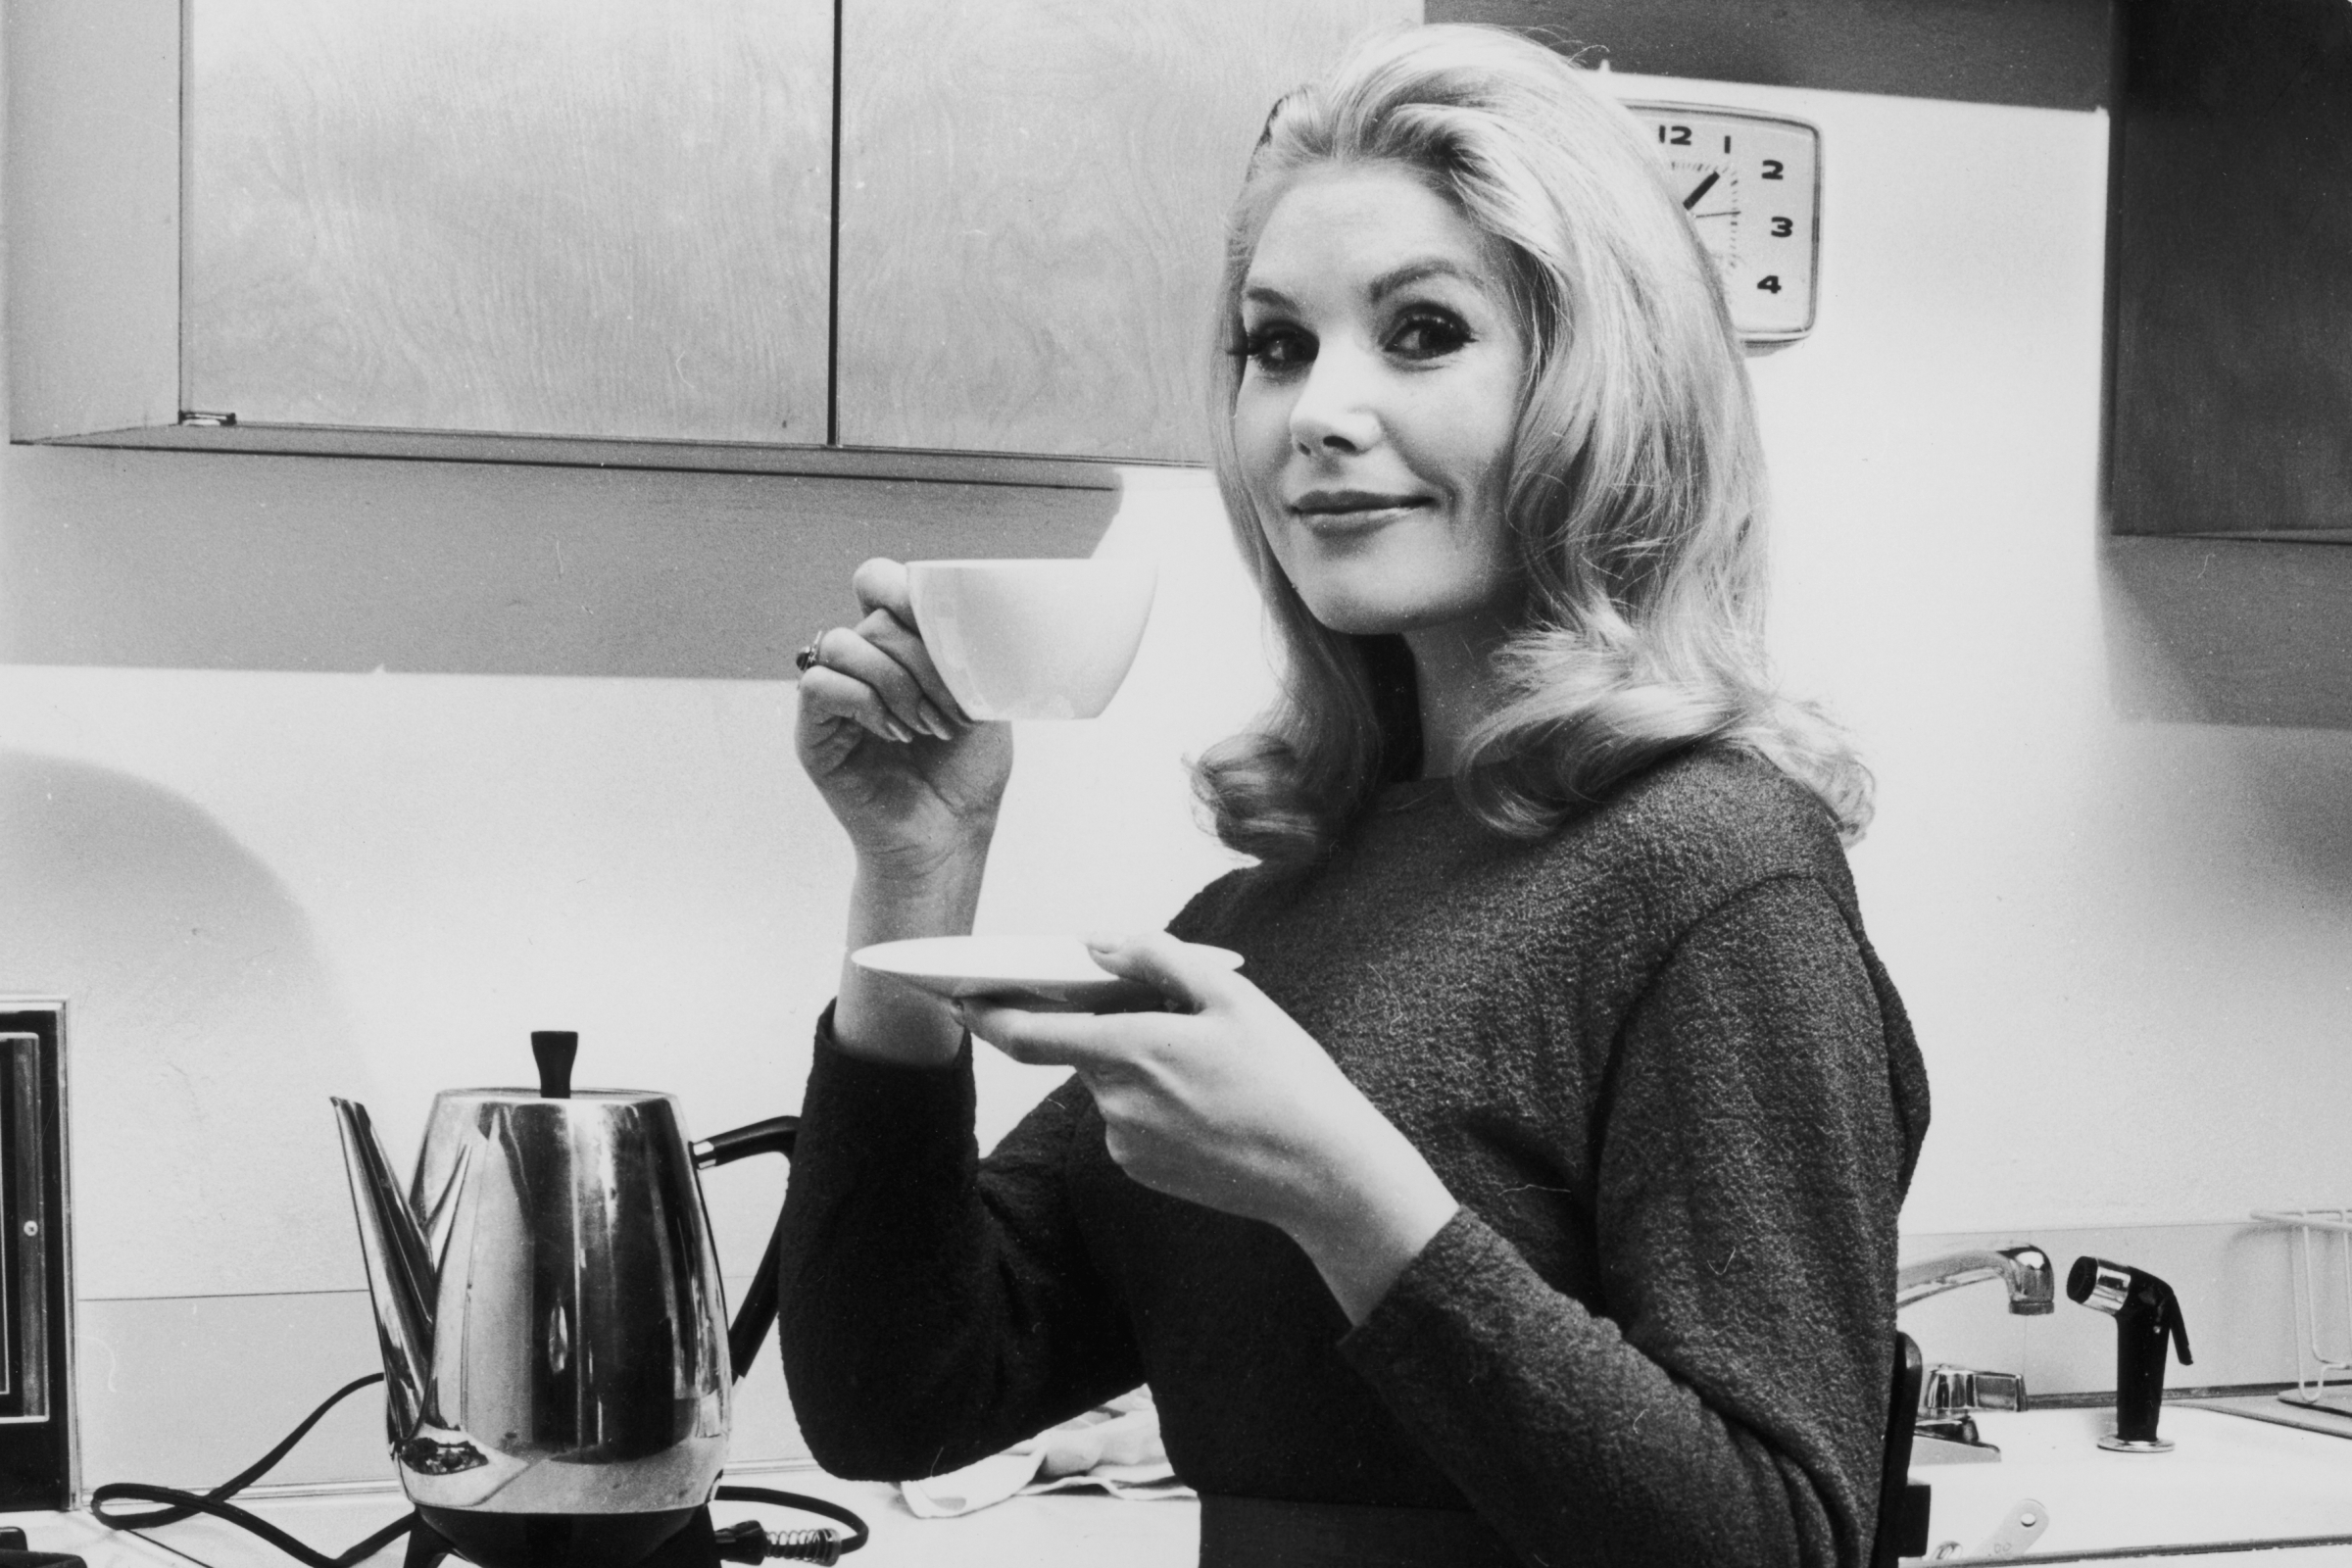 circa 1965: A woman lifts a cup of coffee off a saucer in a kitchen. (Photo by Leo Vals/Hulton Archive/Getty Images)